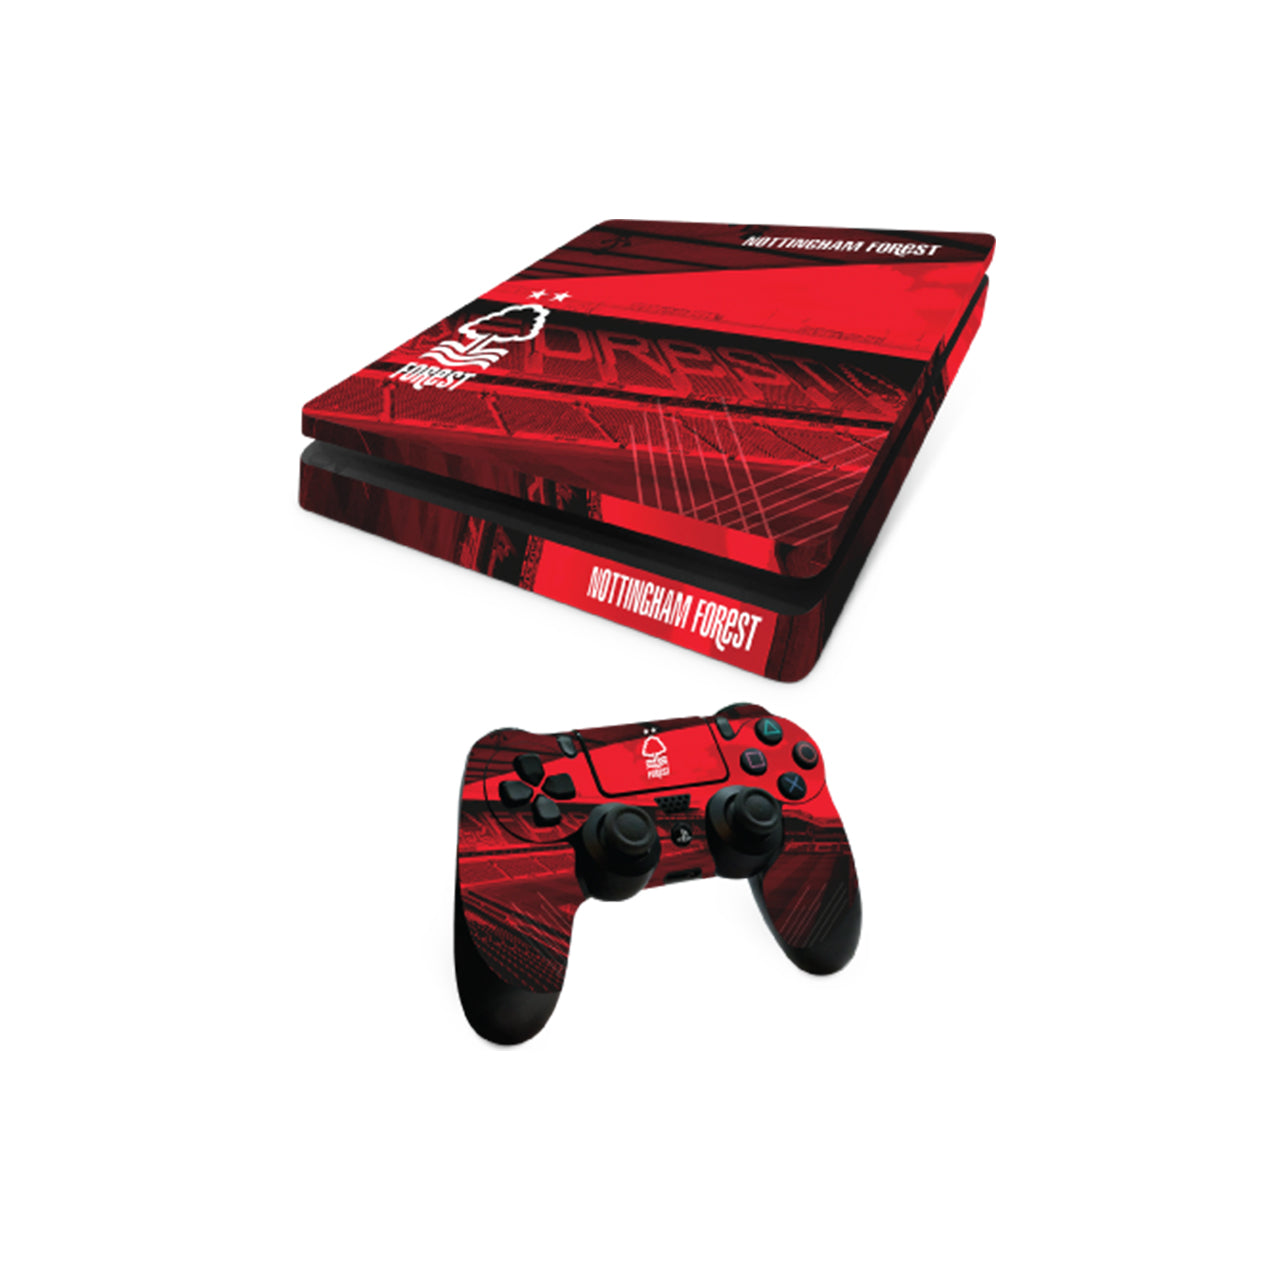 NFFC PS4 Slim Console and Controller Skin Bundle - Nottingham Forest